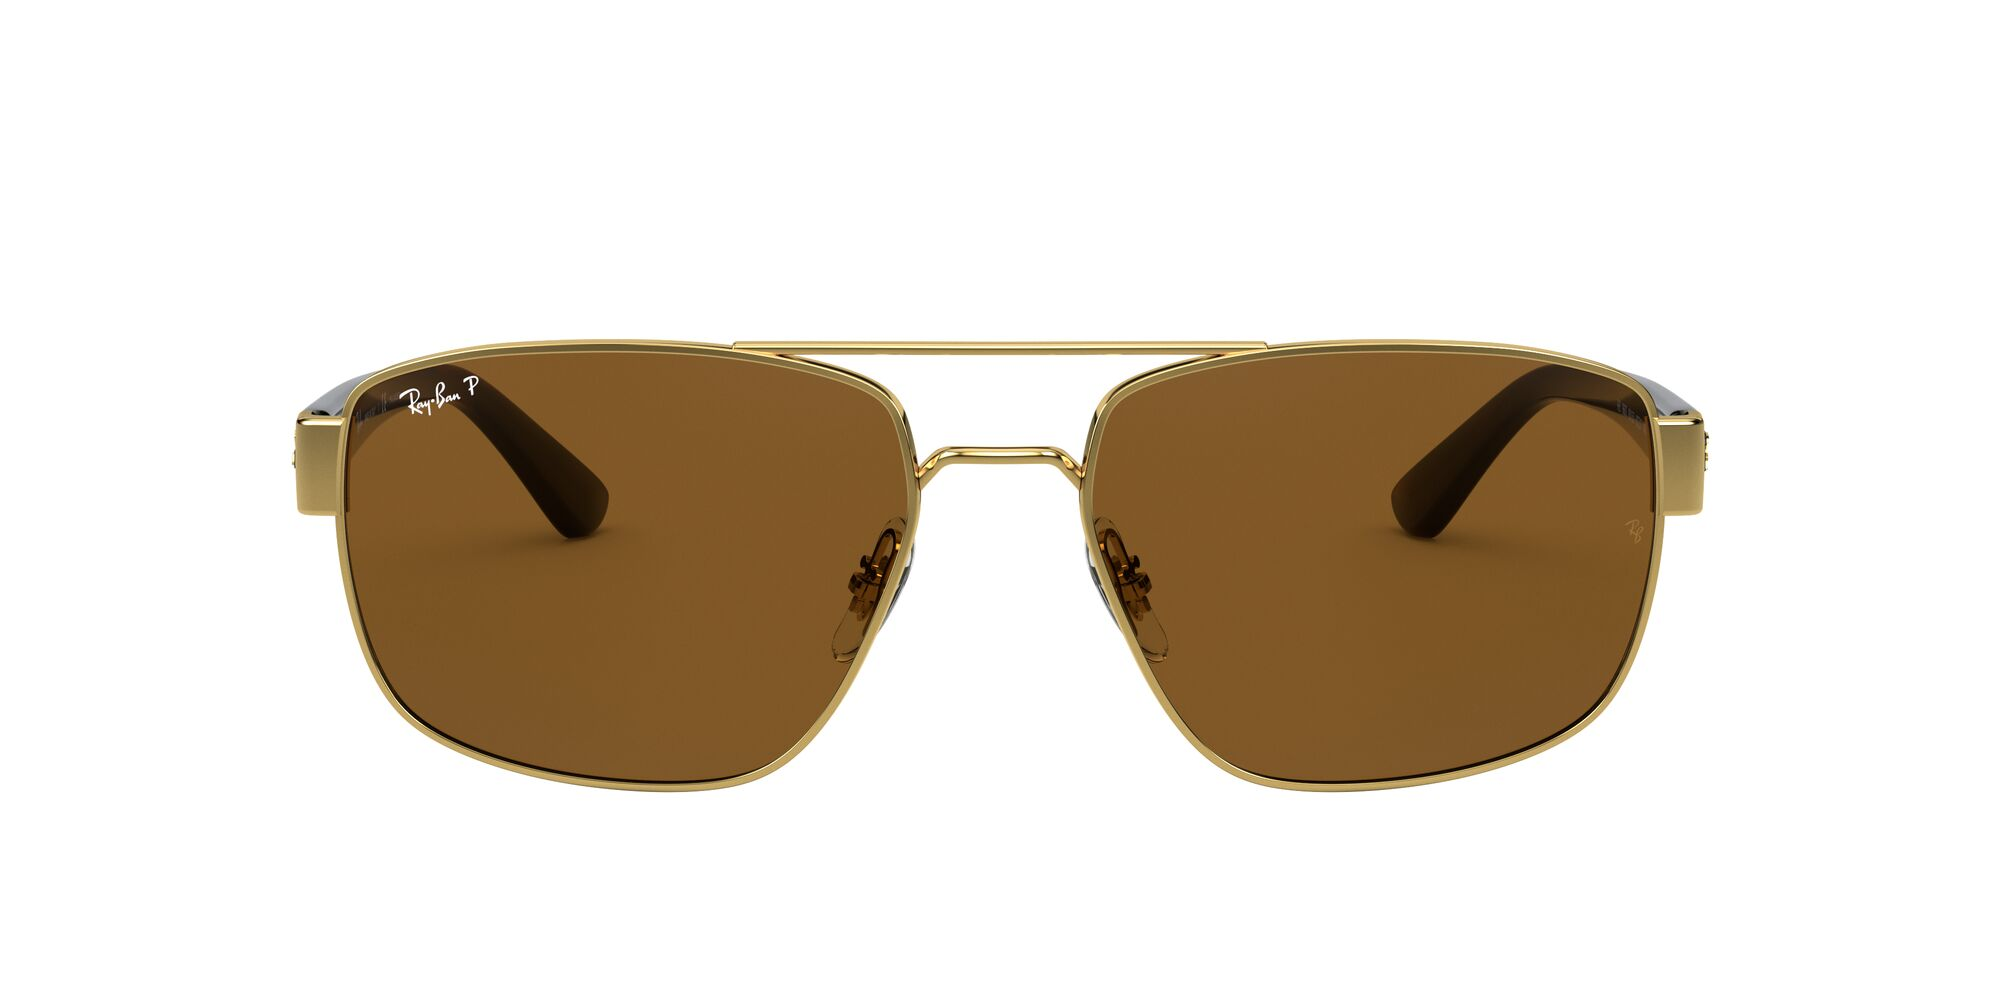 Front Ray-Ban Ray-Ban 0RB3663 001/57 59/17 Goud/Grijs